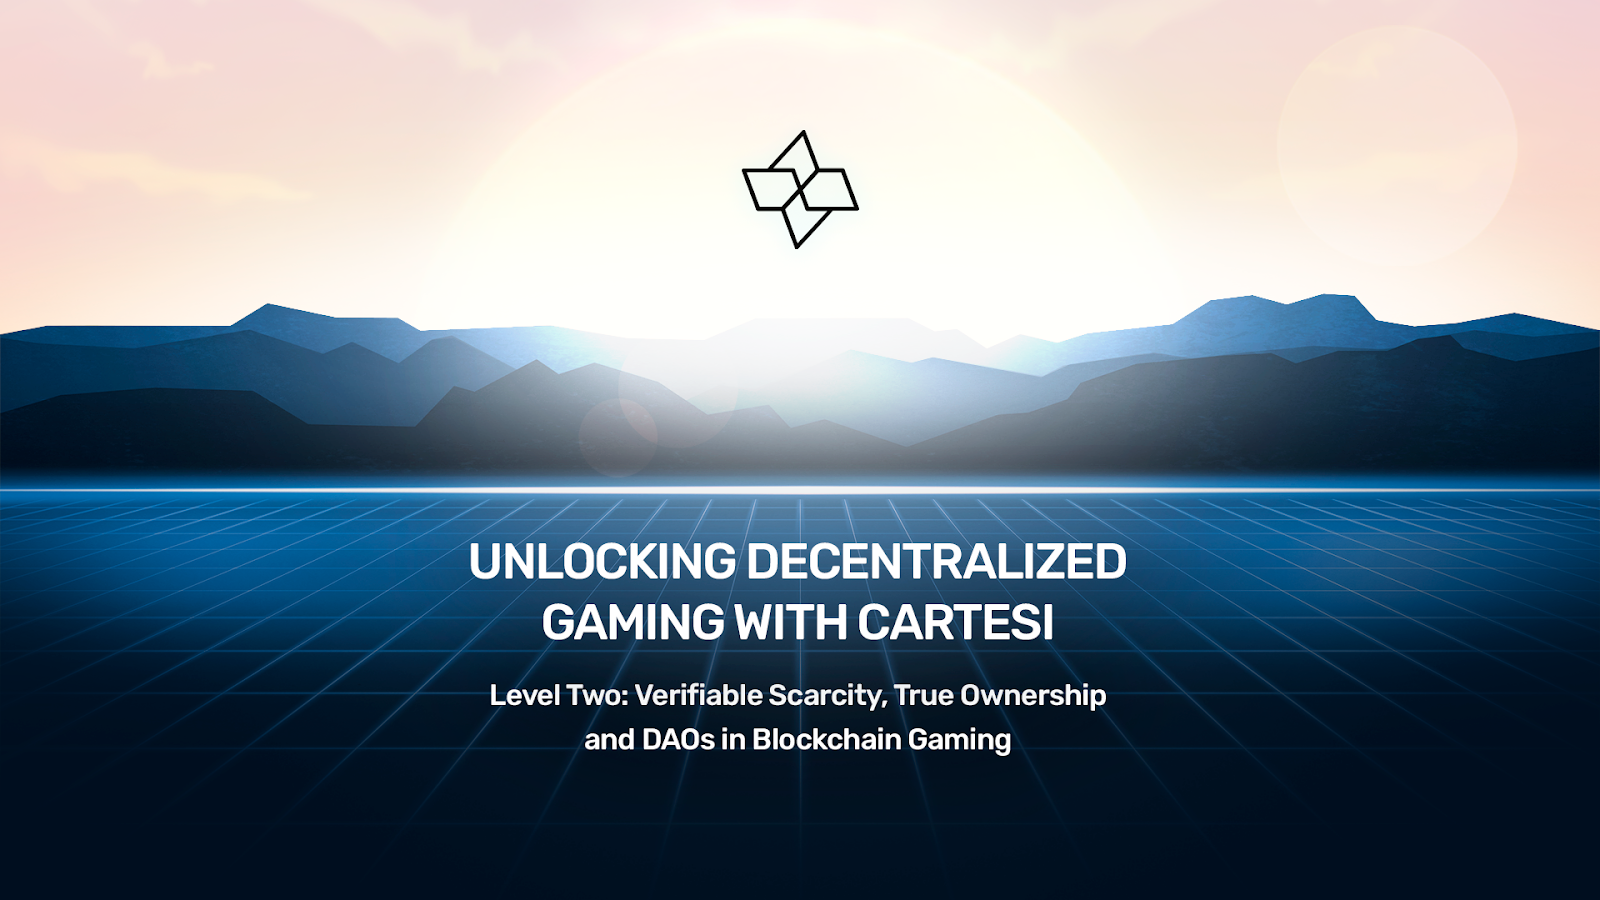 Unlocking the Next Level of Decentralized Gaming with Cartesi